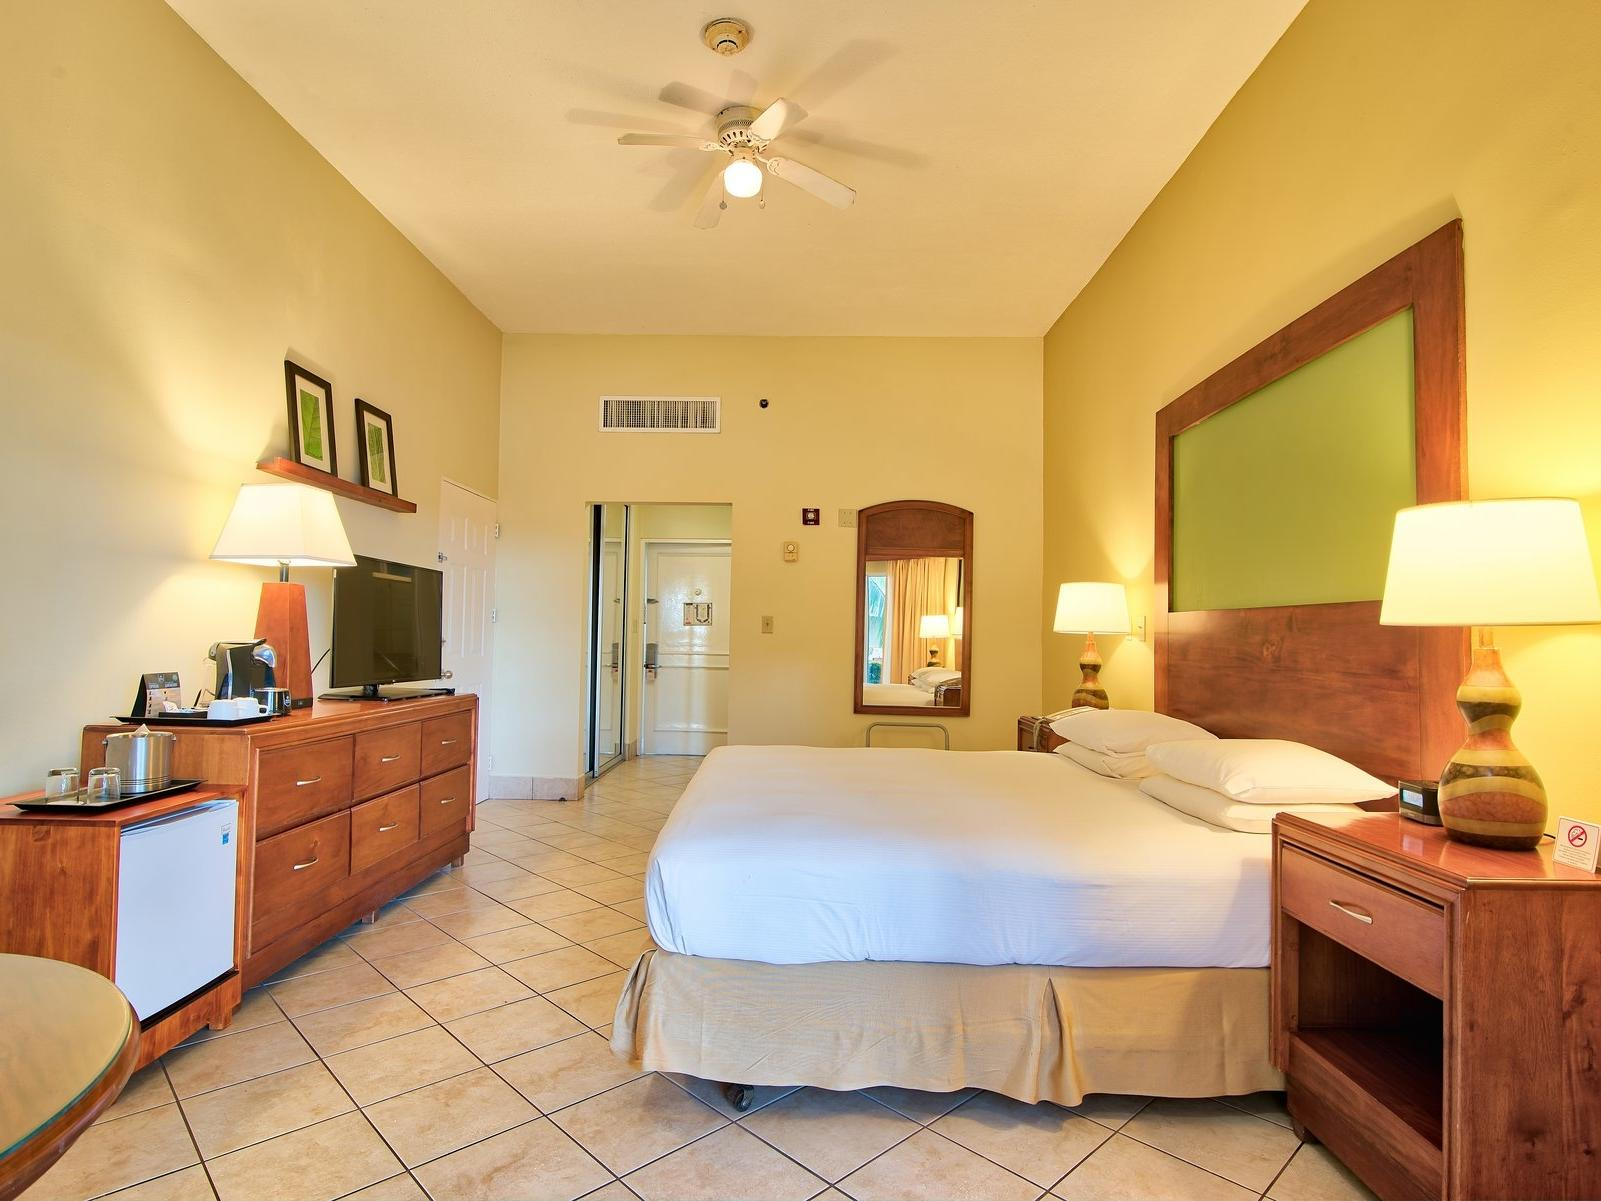 A view of Accessibility preference one king bed at fiesta resort